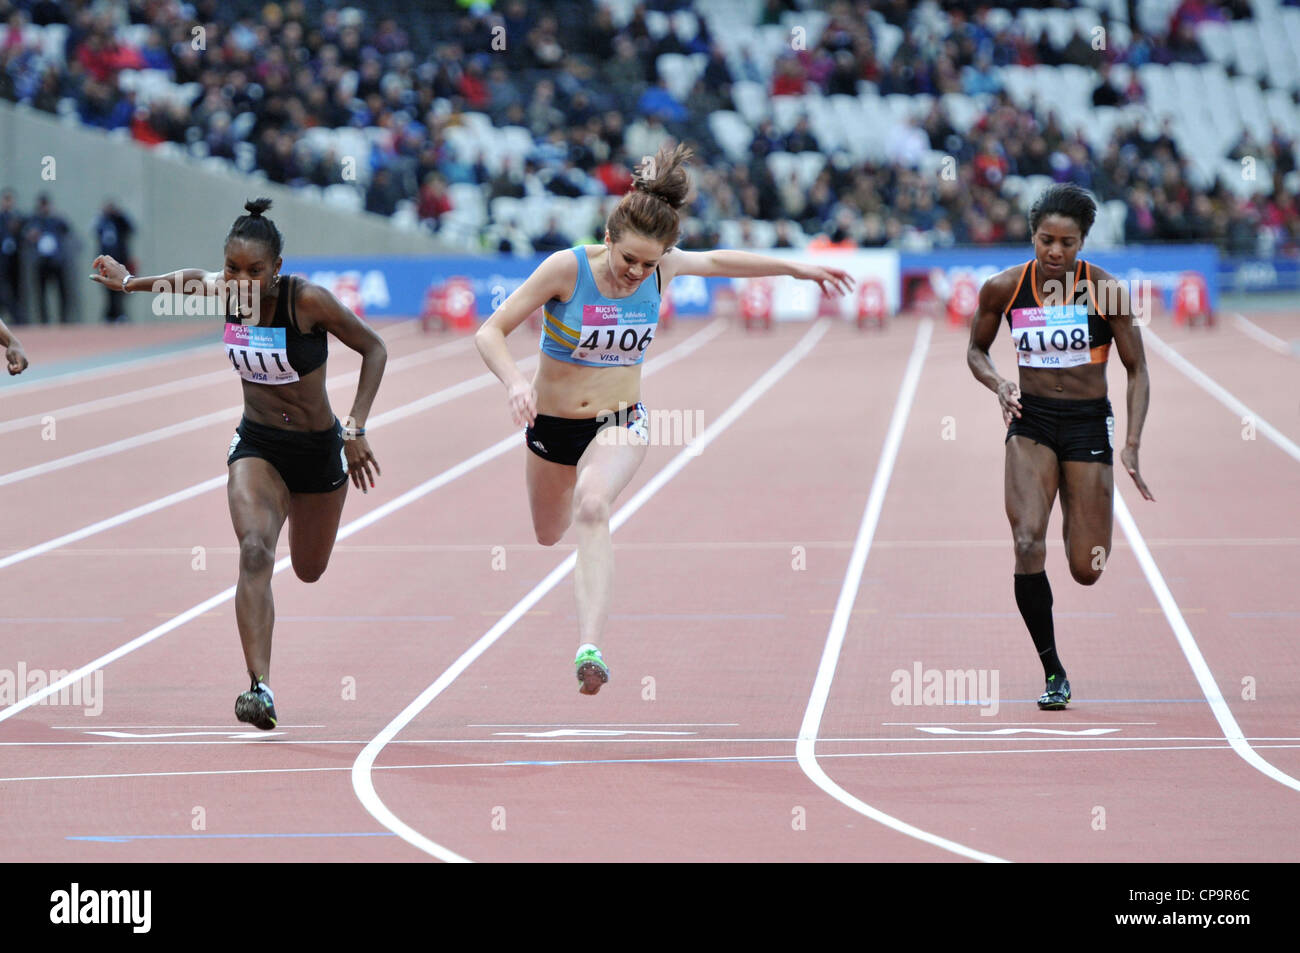 Alamy Athletics Images amp; Sprint 100m Photos xY0qU5X